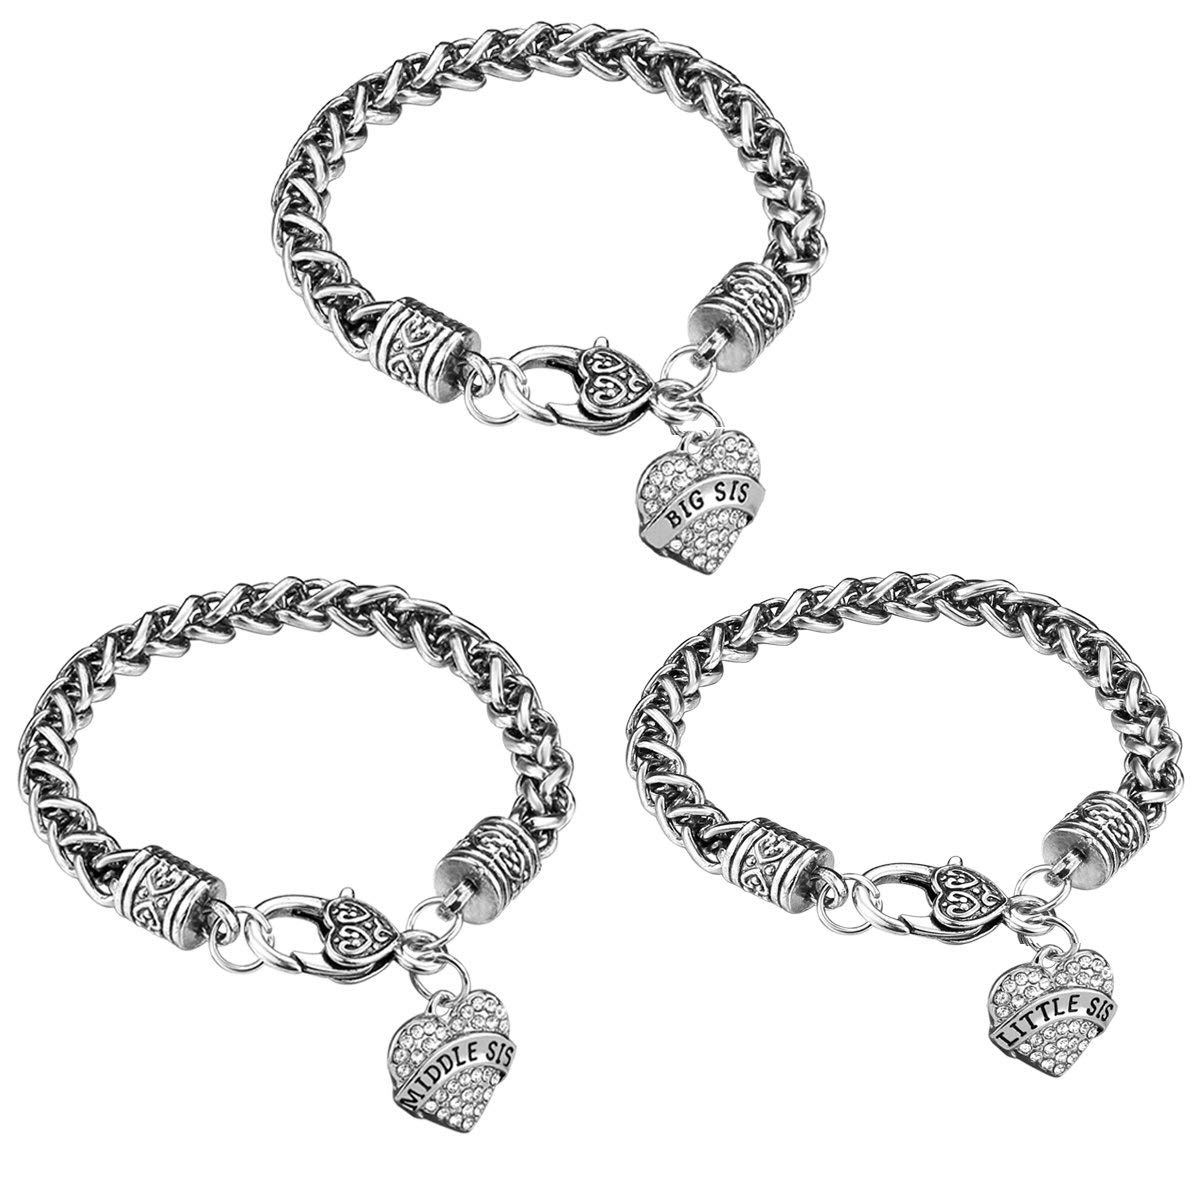 Get Quotations Ijuqi Sister Gift Charm Bracelet Set 3pcs Silver Crystal Love Heart Middle Little Sis